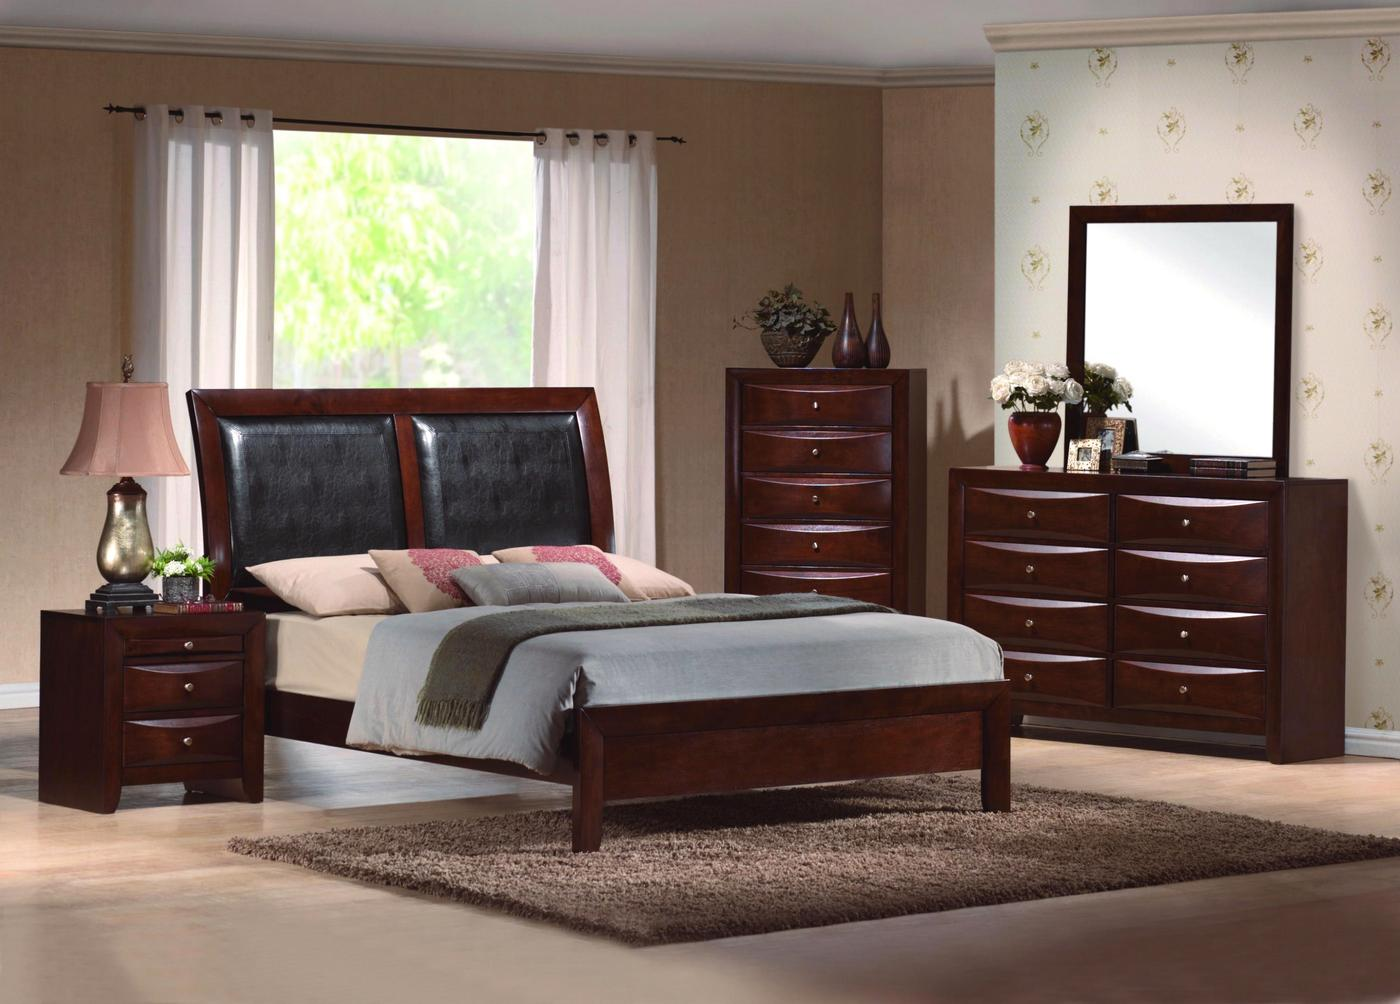 Emily upholstered low profile bed contemporary bedroom set - Contemporary modern bedroom sets ...